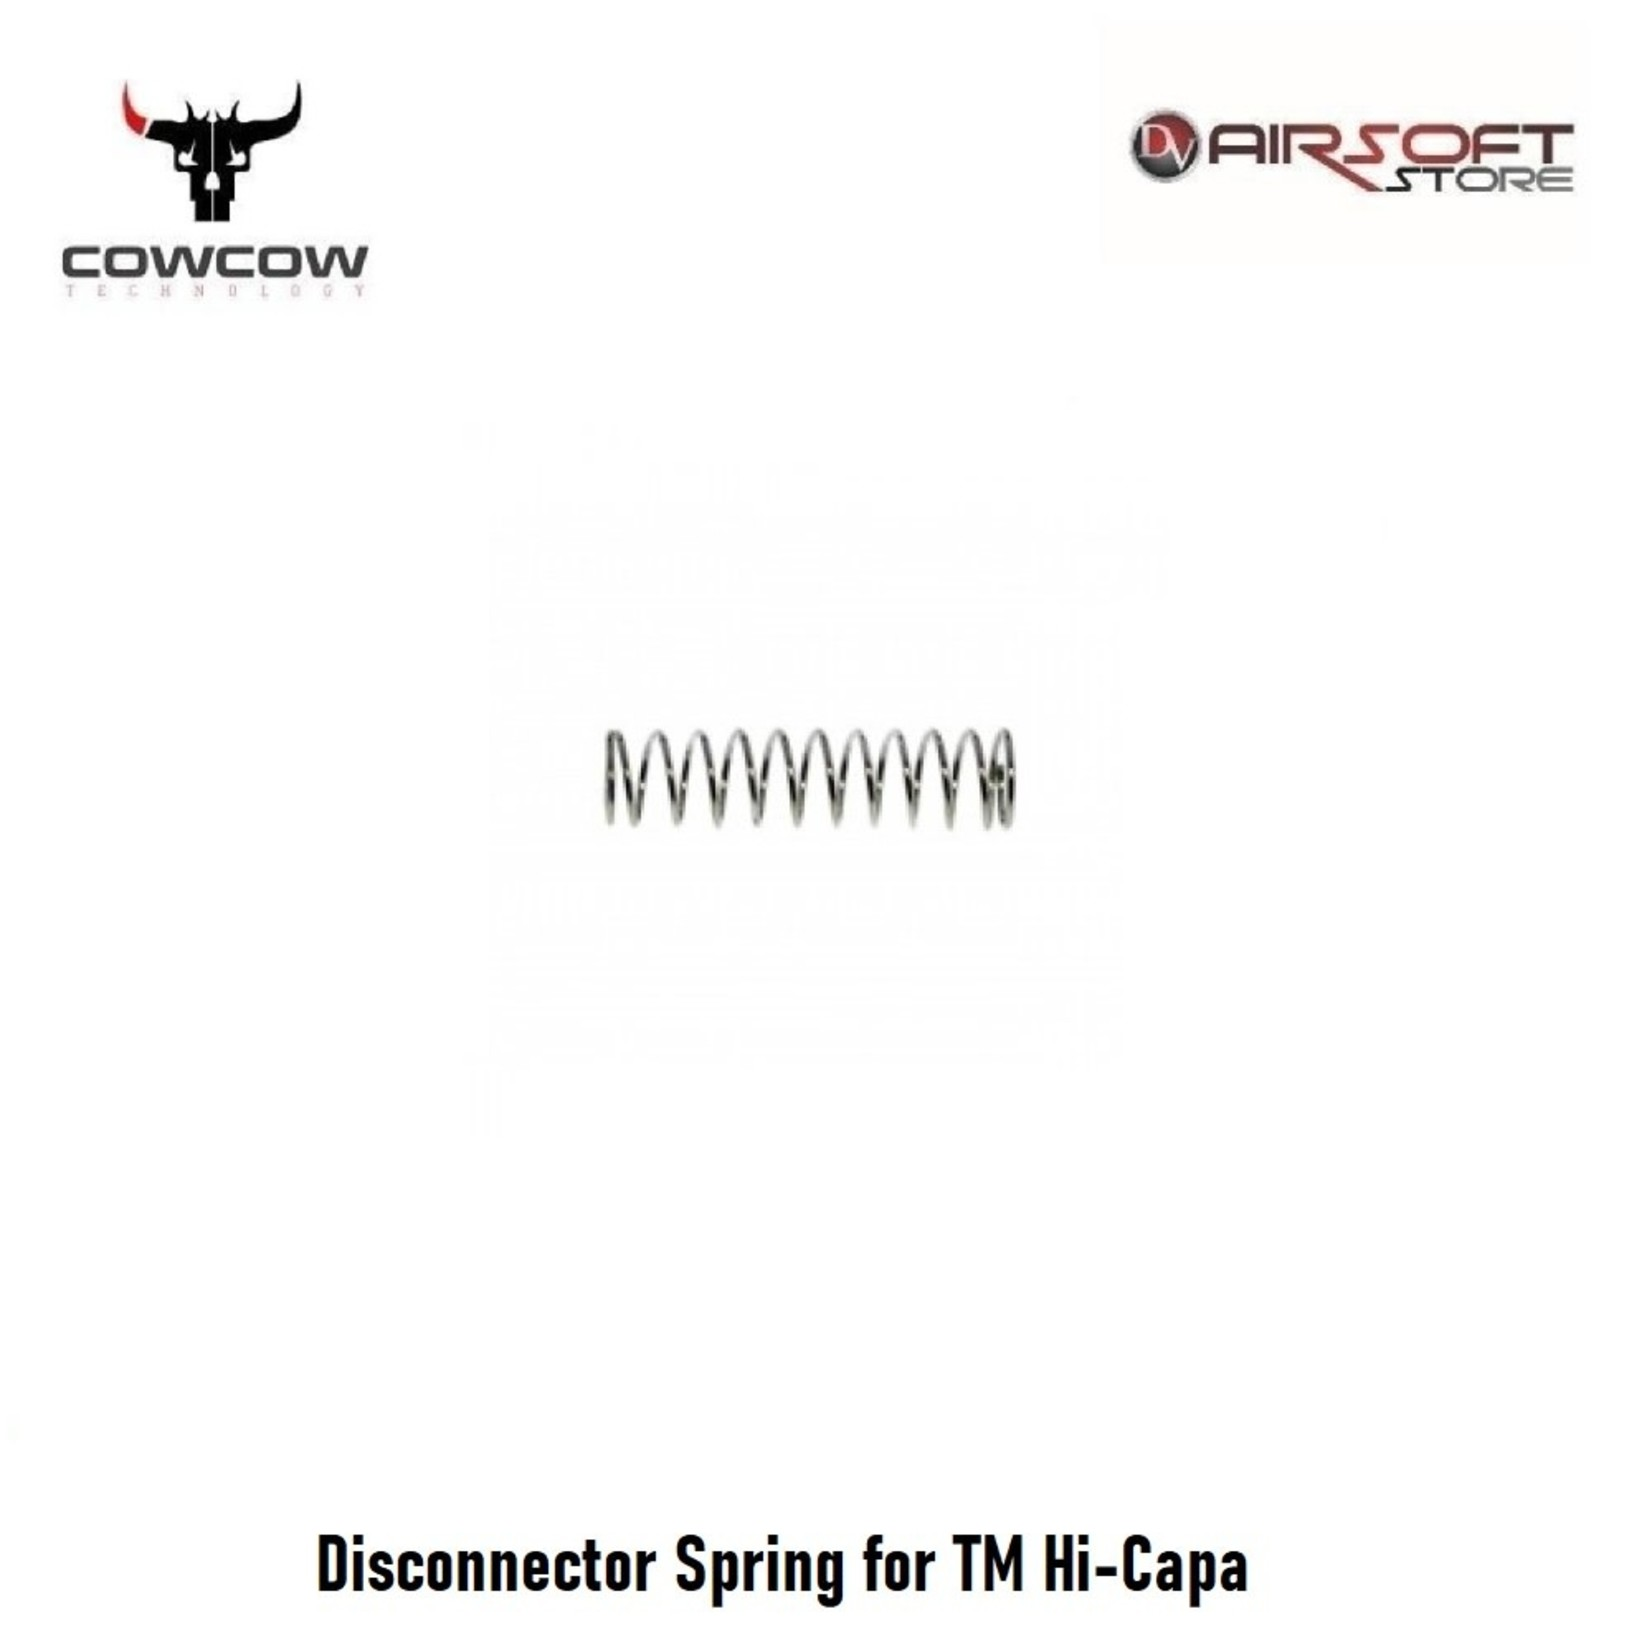 CowCow Disconnector Spring for TM Hi-Capa